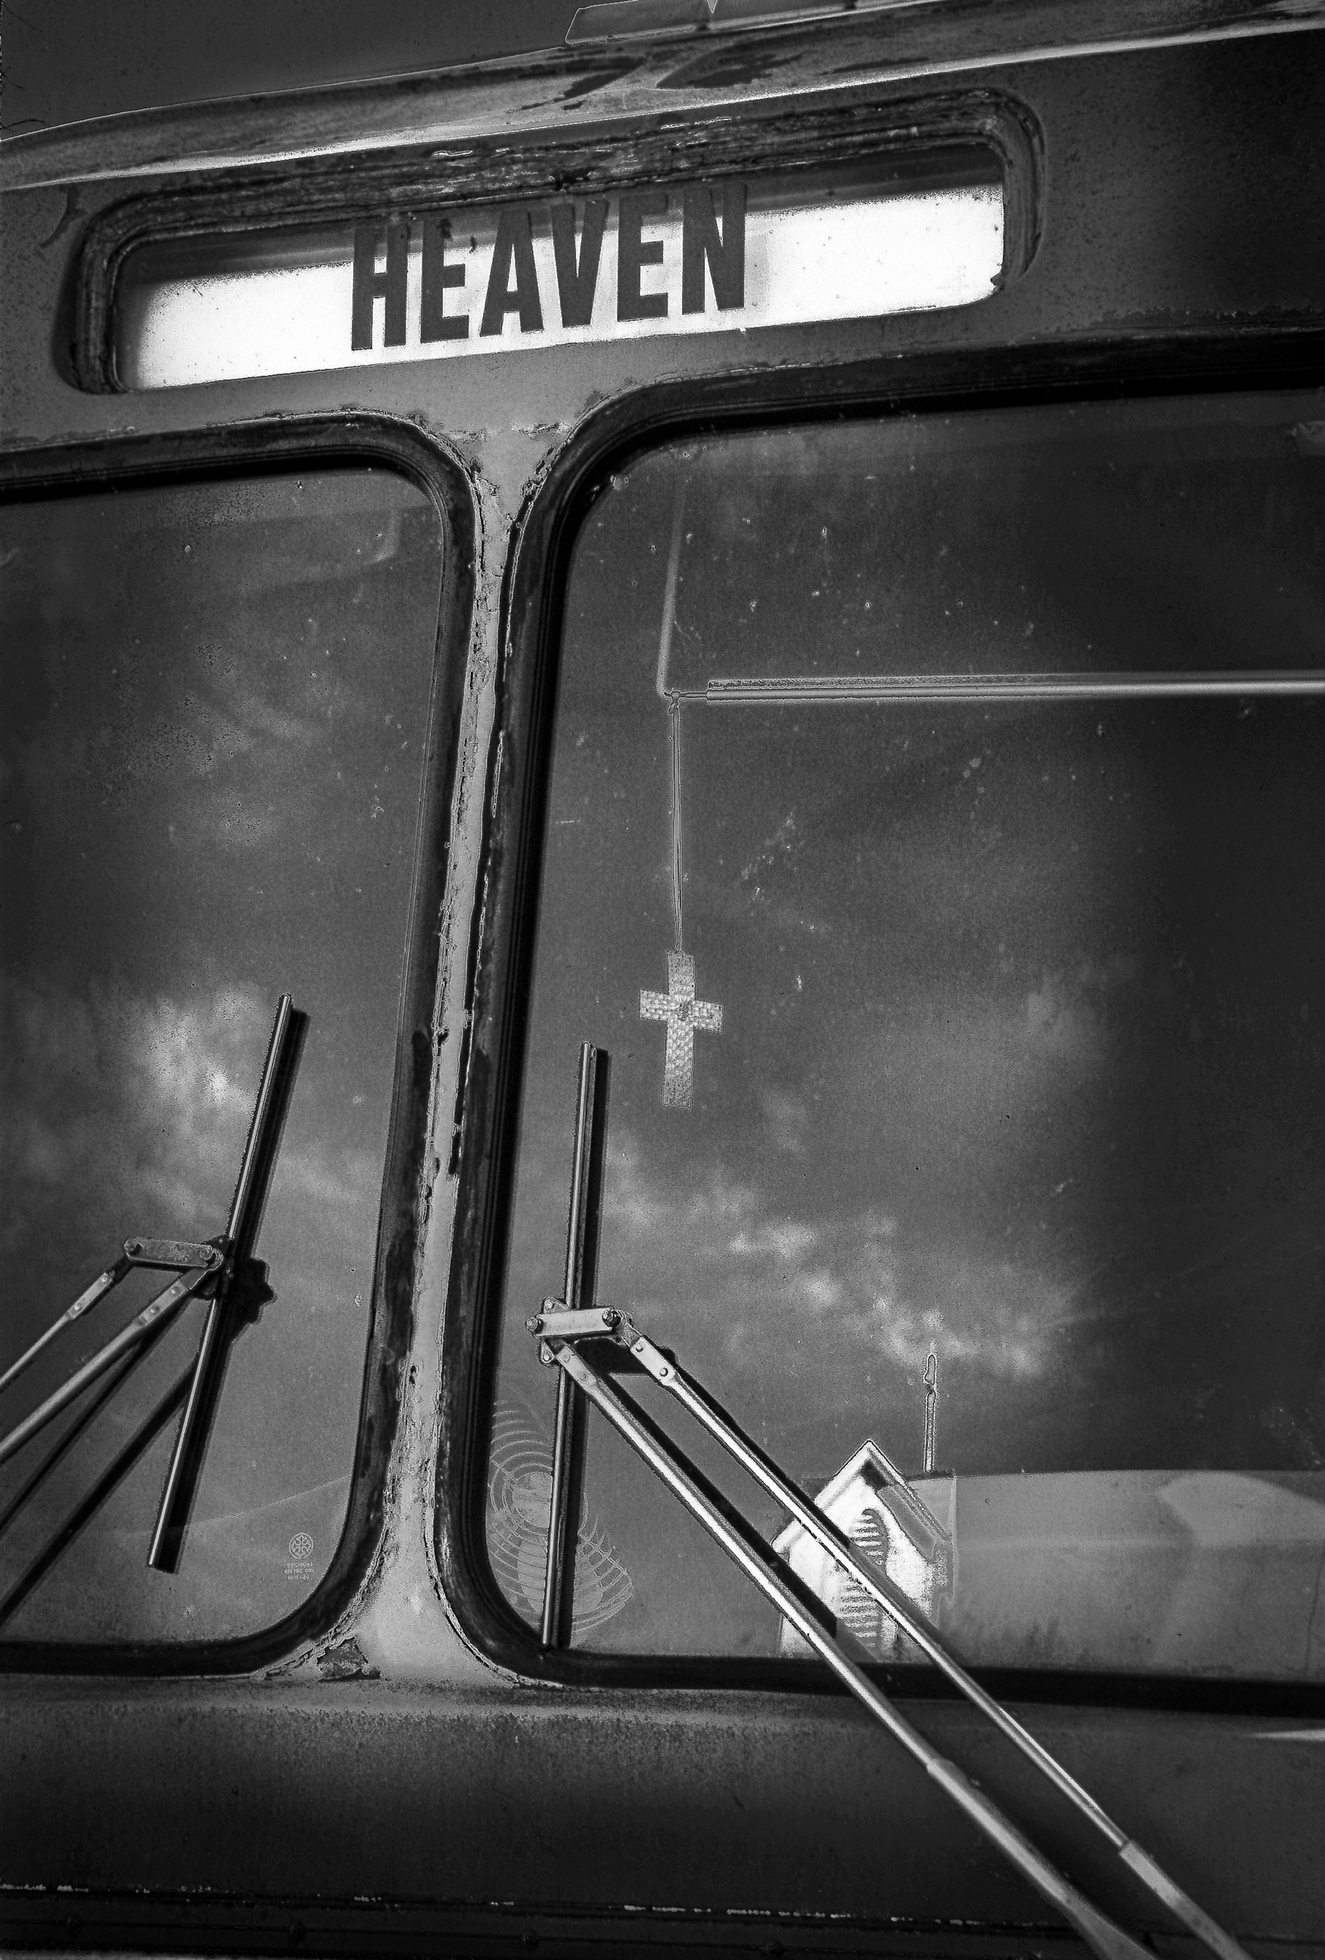 A bus with a destination sign  that says HEAVEN. A church can be seen in the reflection of the windshield.